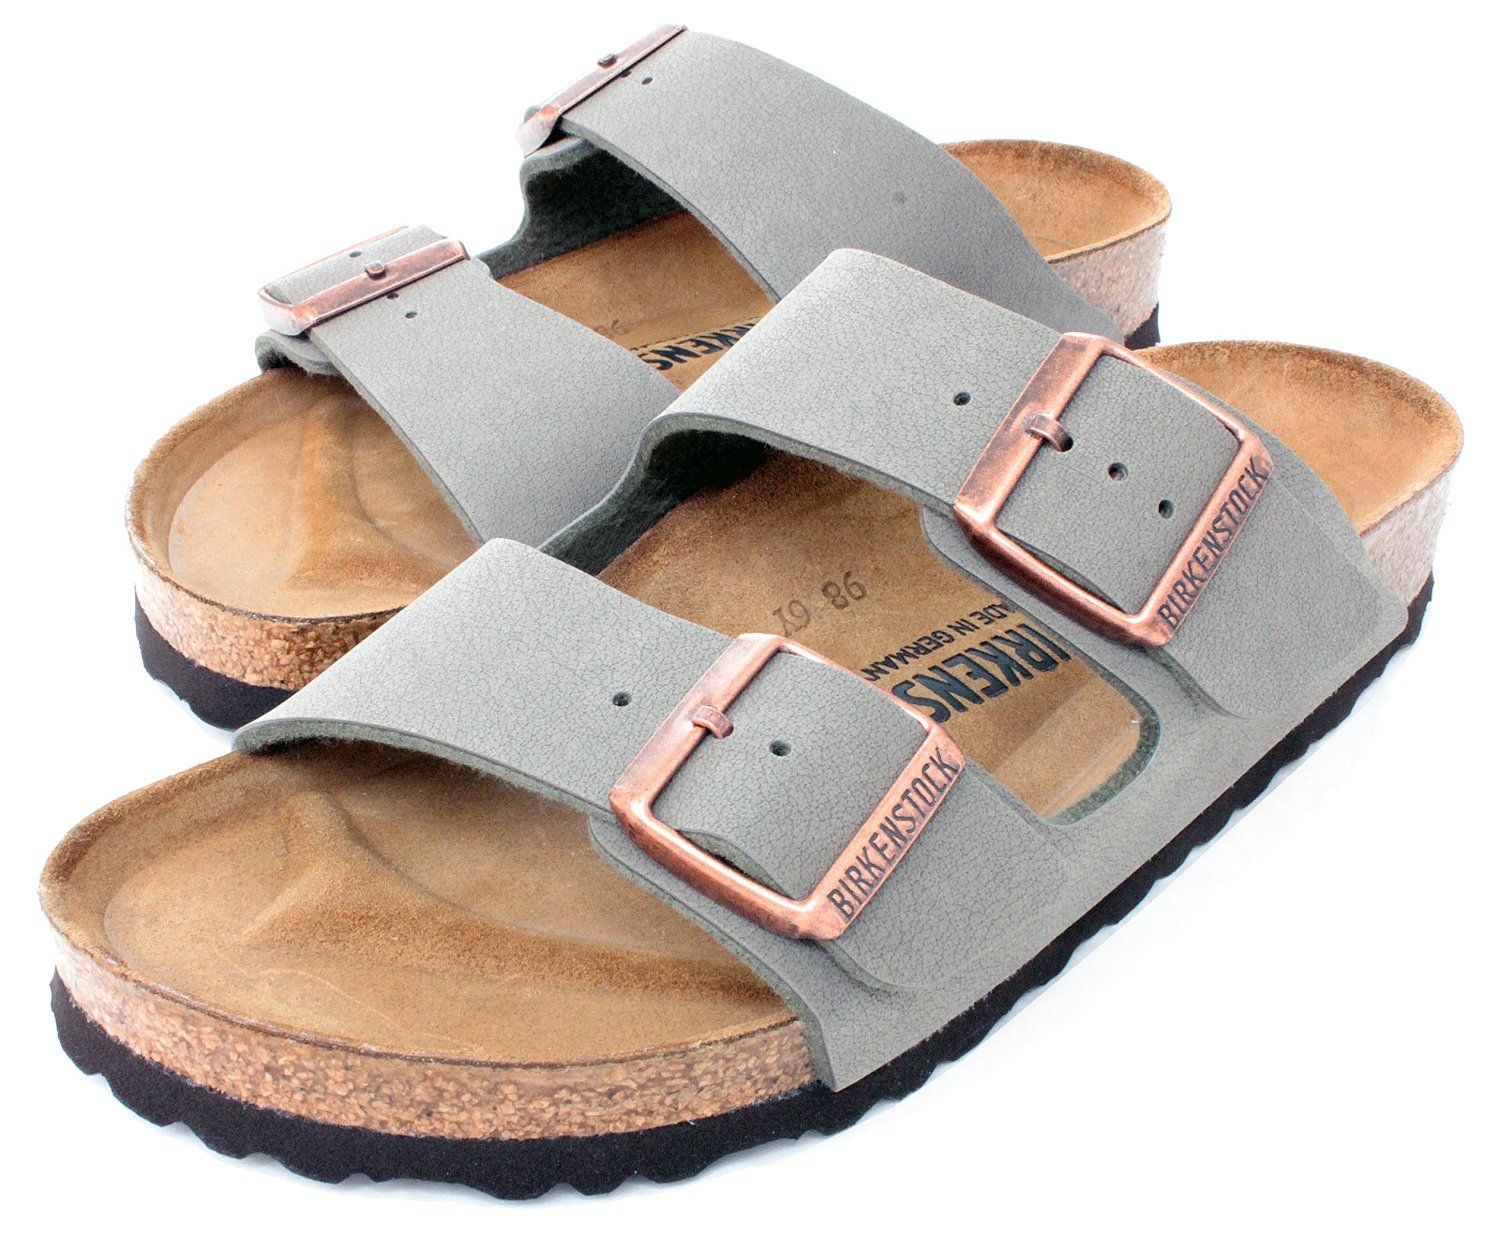 257b7c0d8fcc Birkenstock Arizona 2-Strap Women s Sandals in Stone Birko-Flor ...